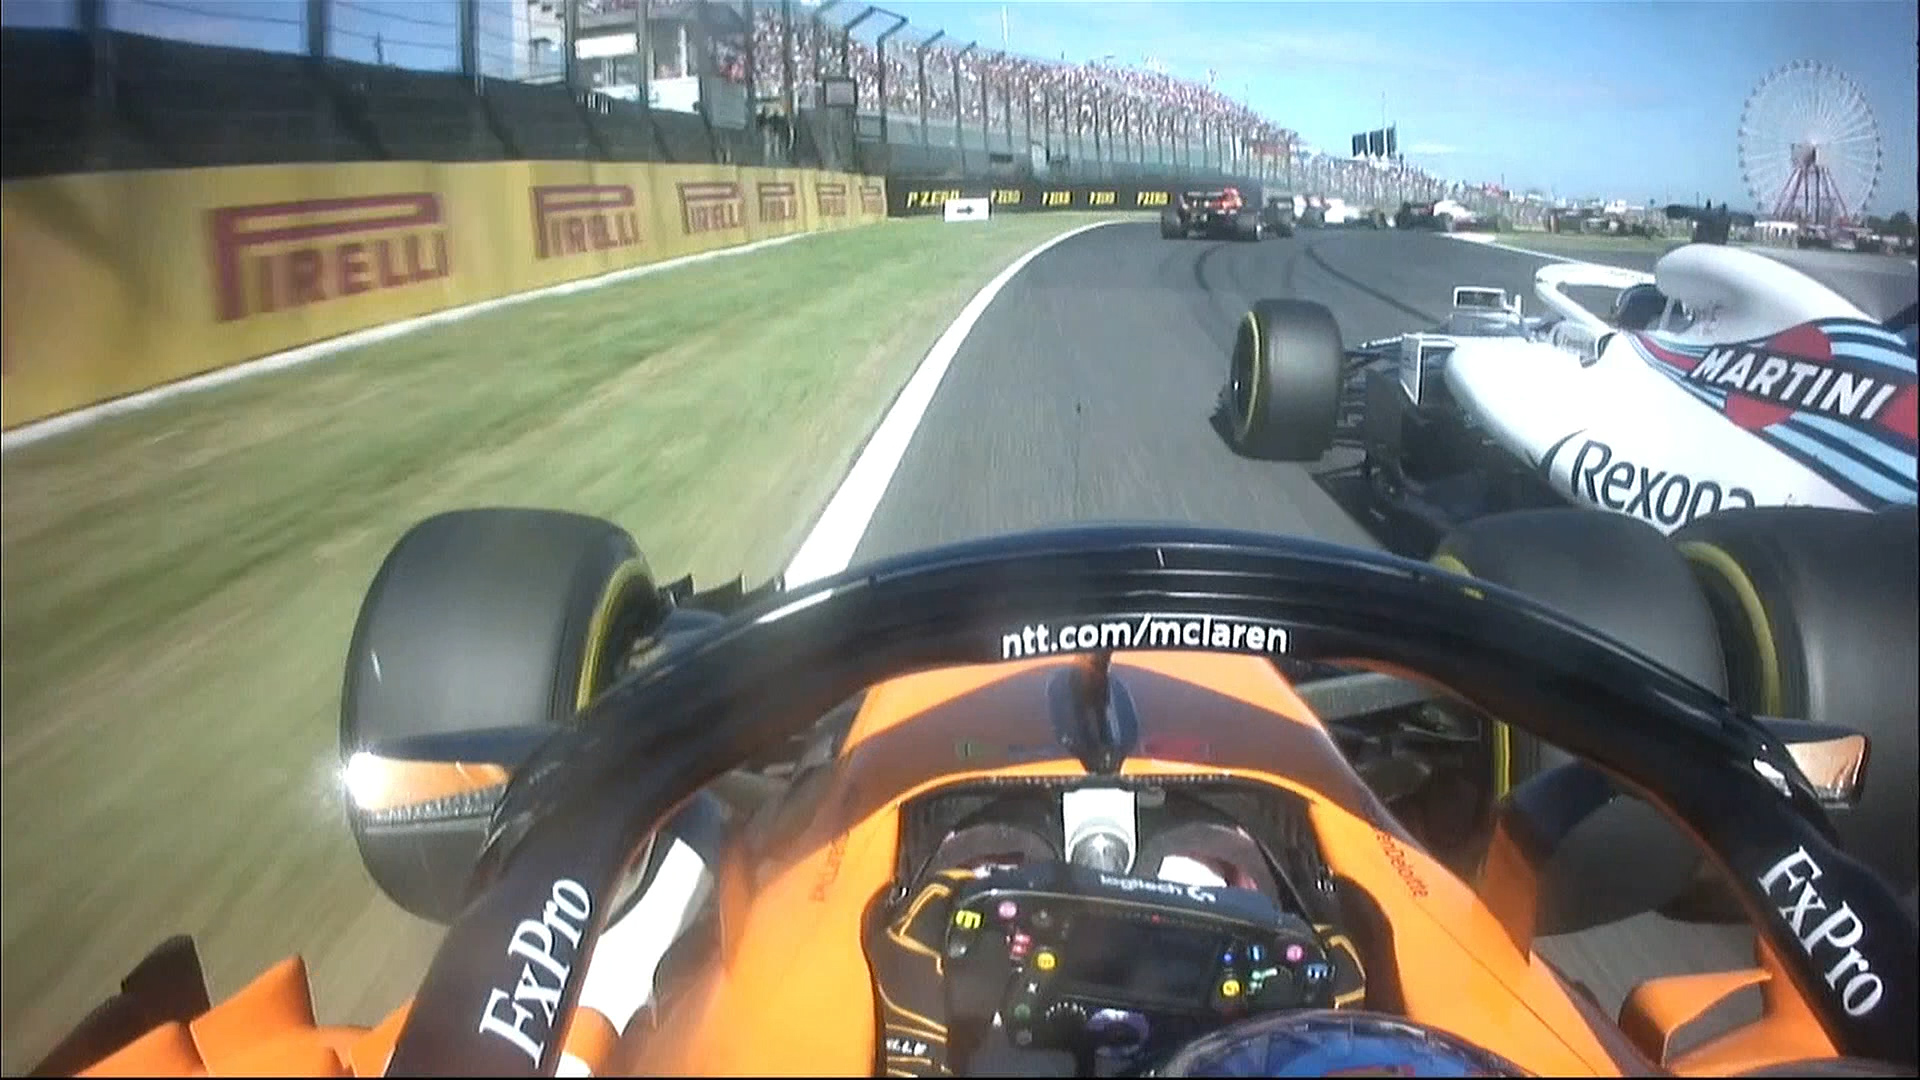 RACE: Battle at the chicane sees both Alonso and Stroll penalised